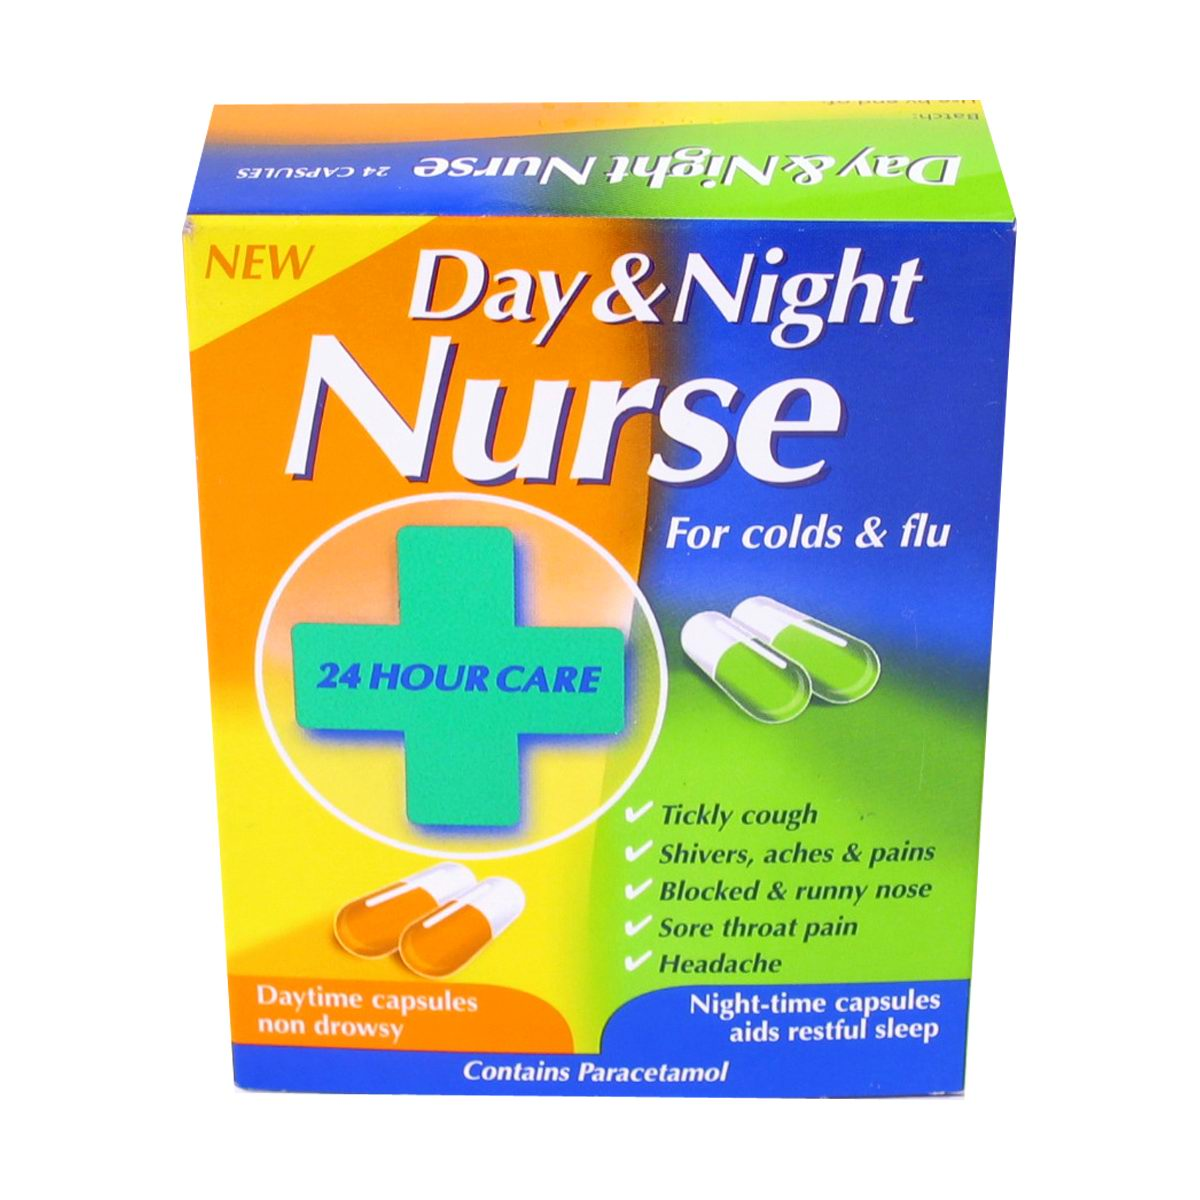 Day and night Nurse capsules